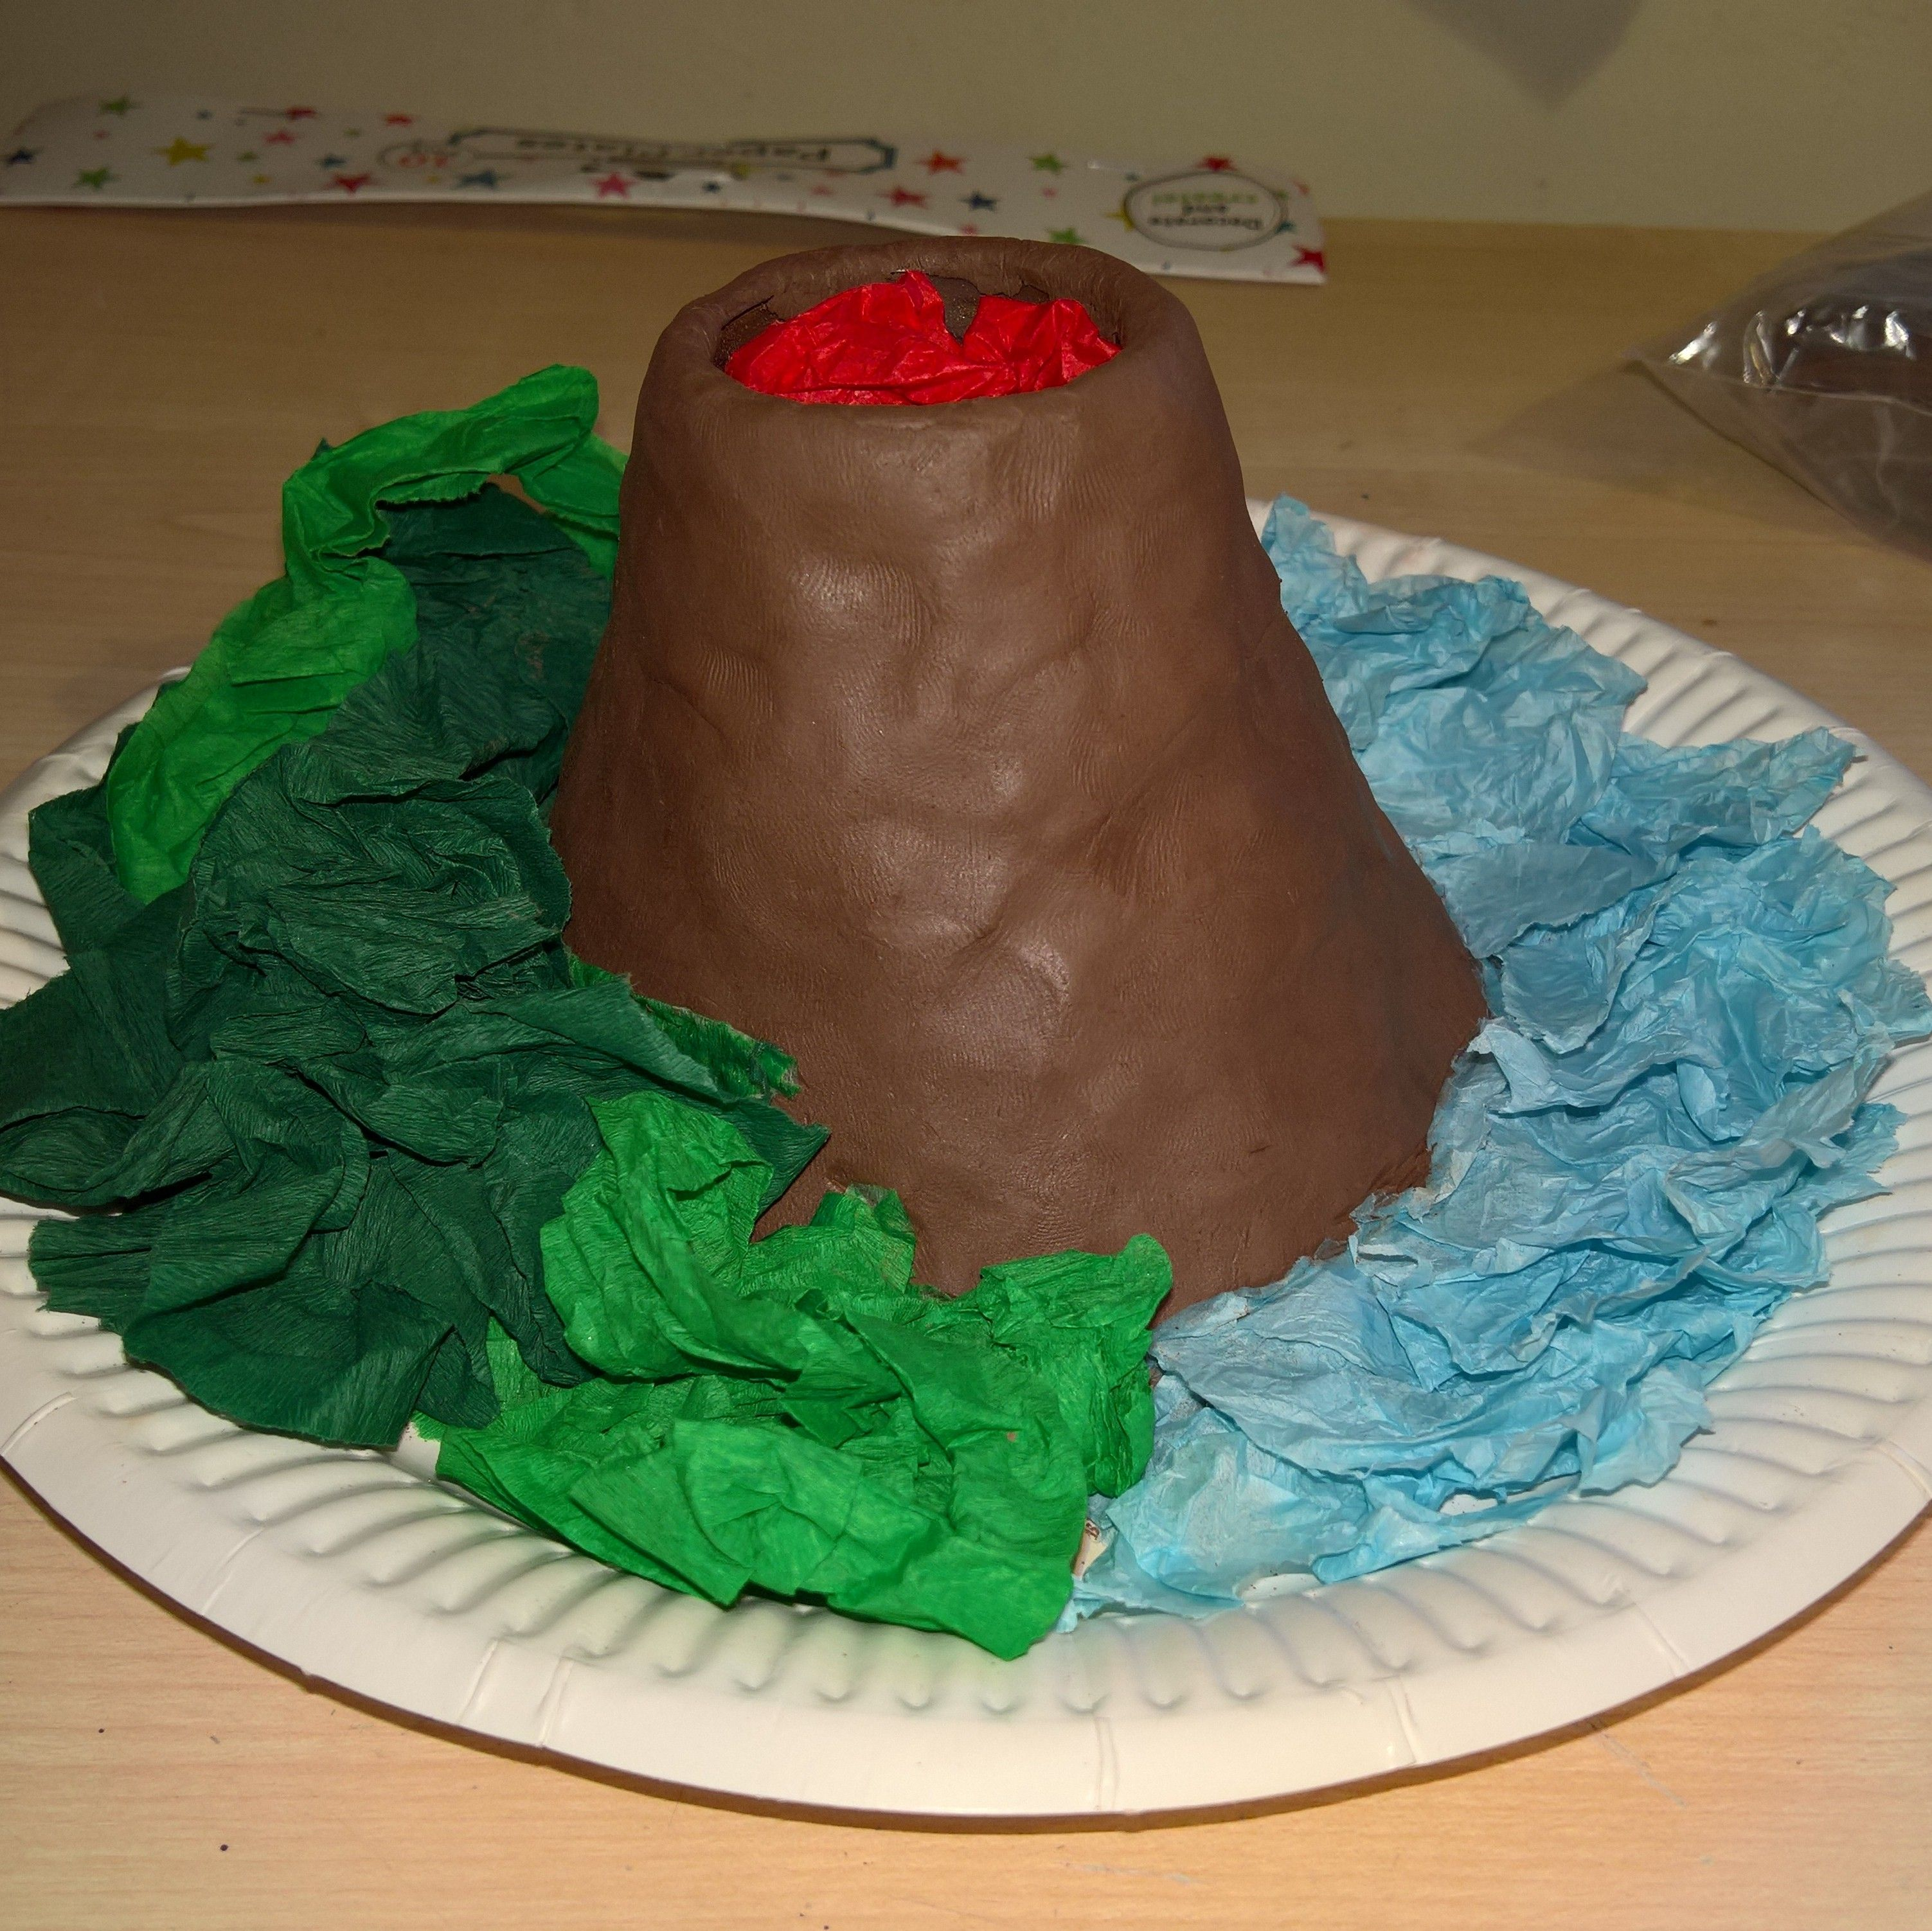 Easy Volcano Project With Children Air Dry Clay Wrapped